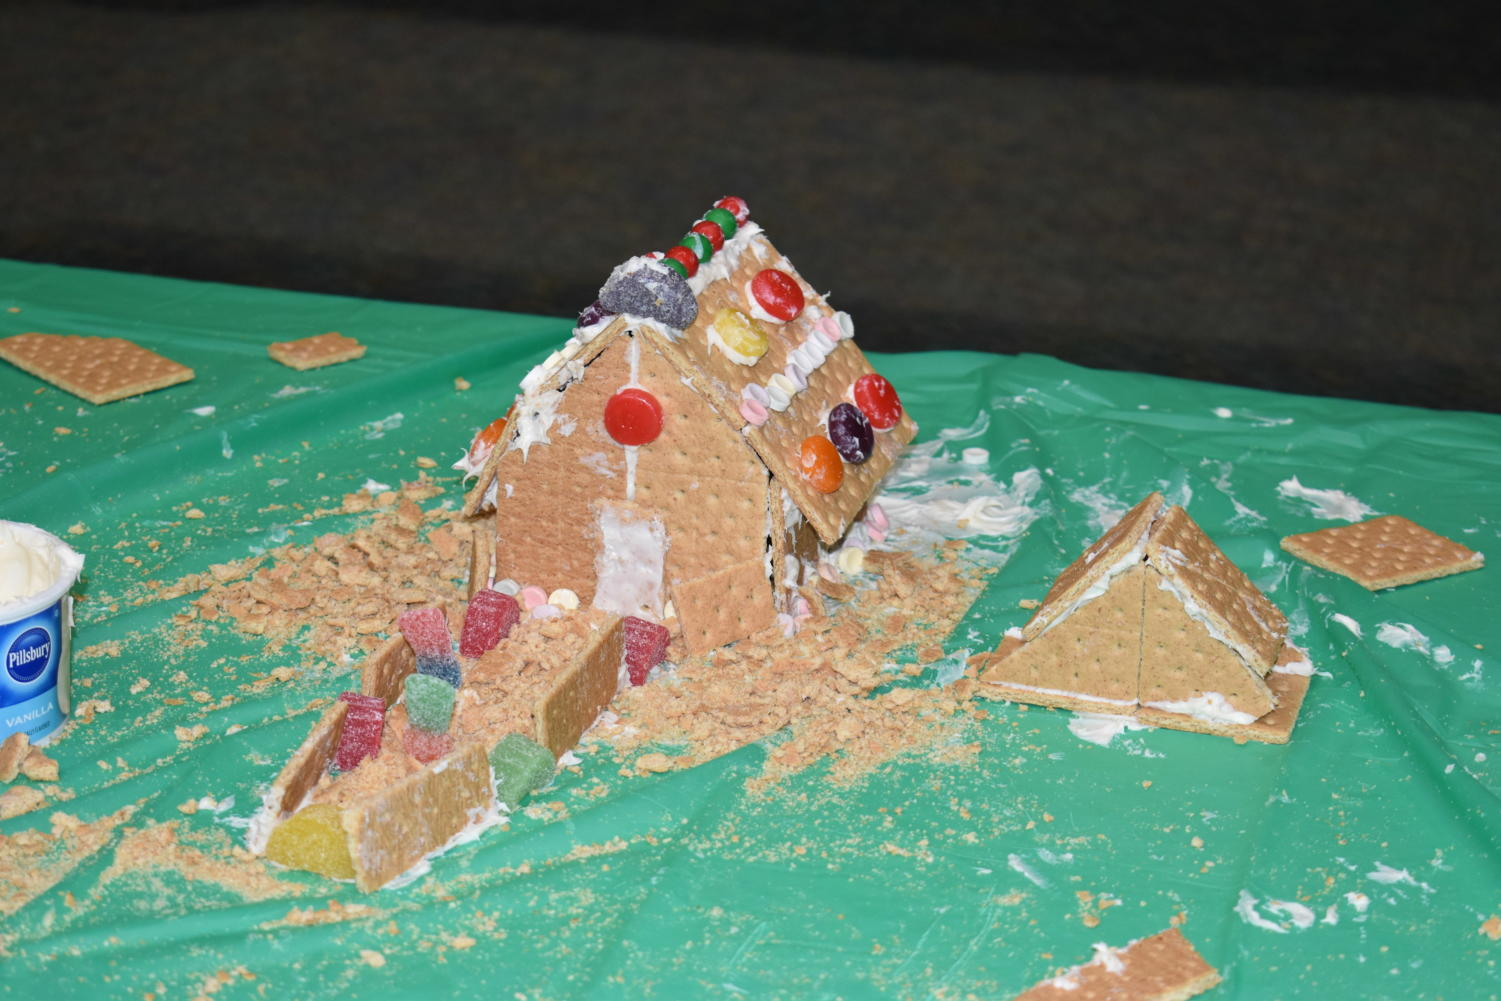 The+junior%27s+traditional+styled+house+included+a+ginger+crumble+yard+and+a+gummy+pathway.